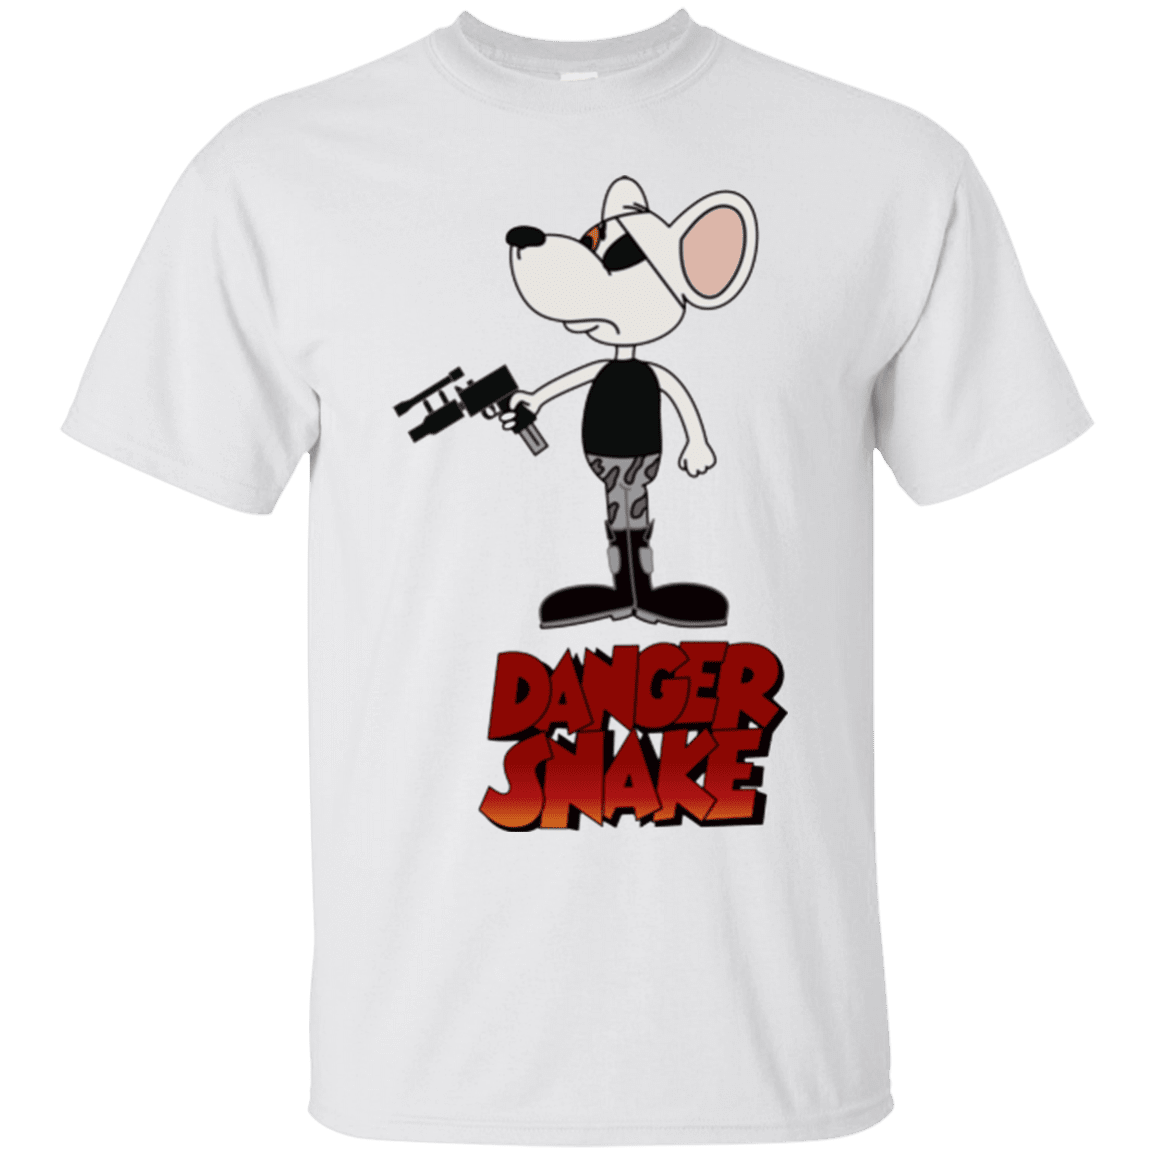 Dangersnake T-Shirt